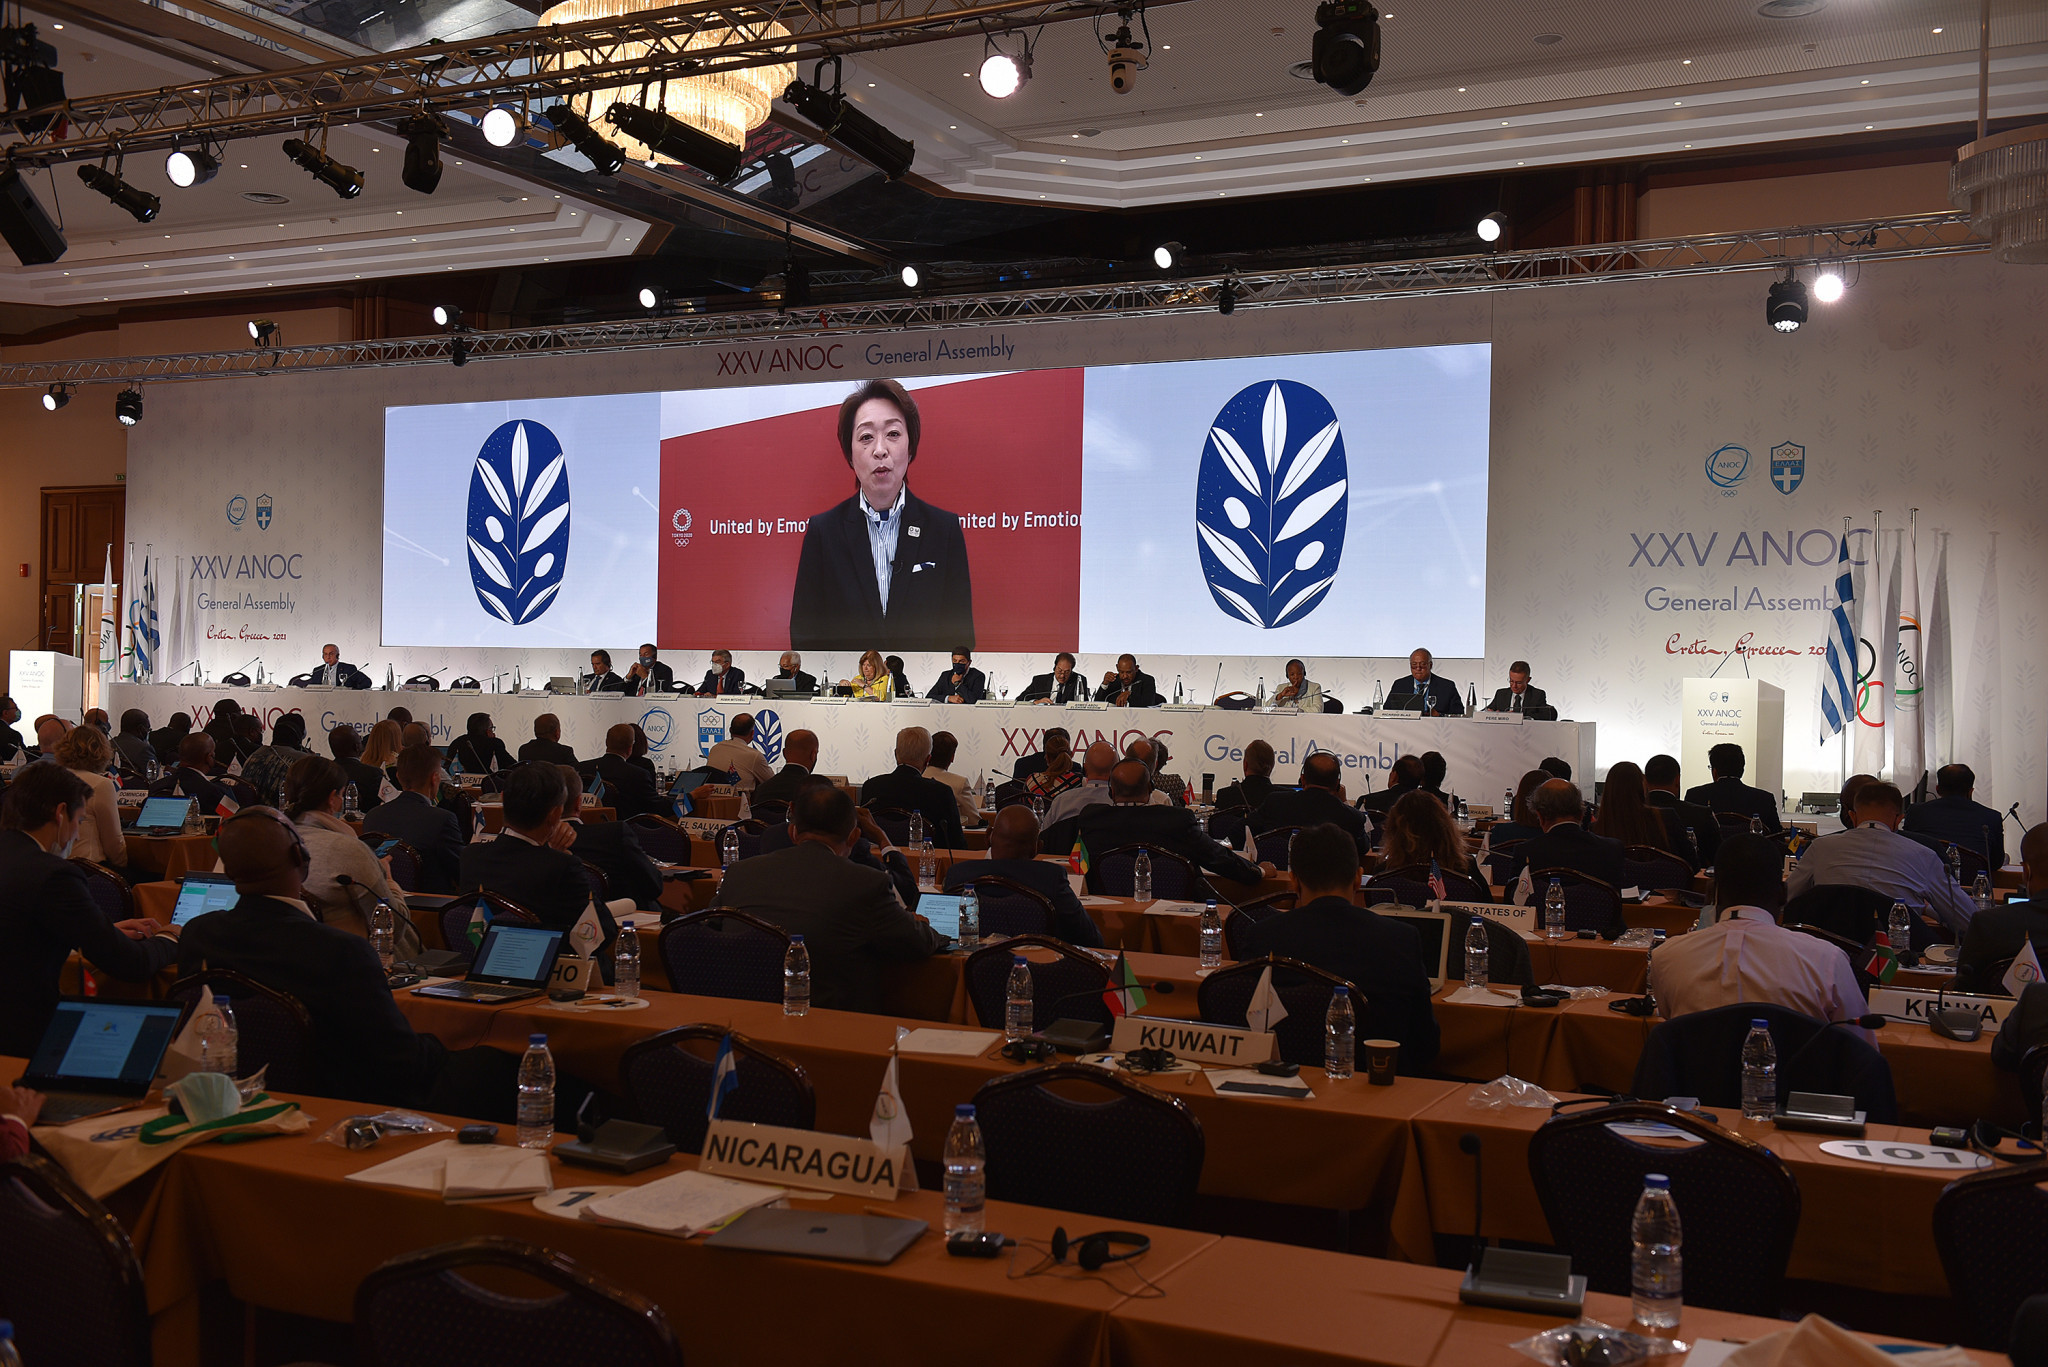 ANOC General Assembly: Day two